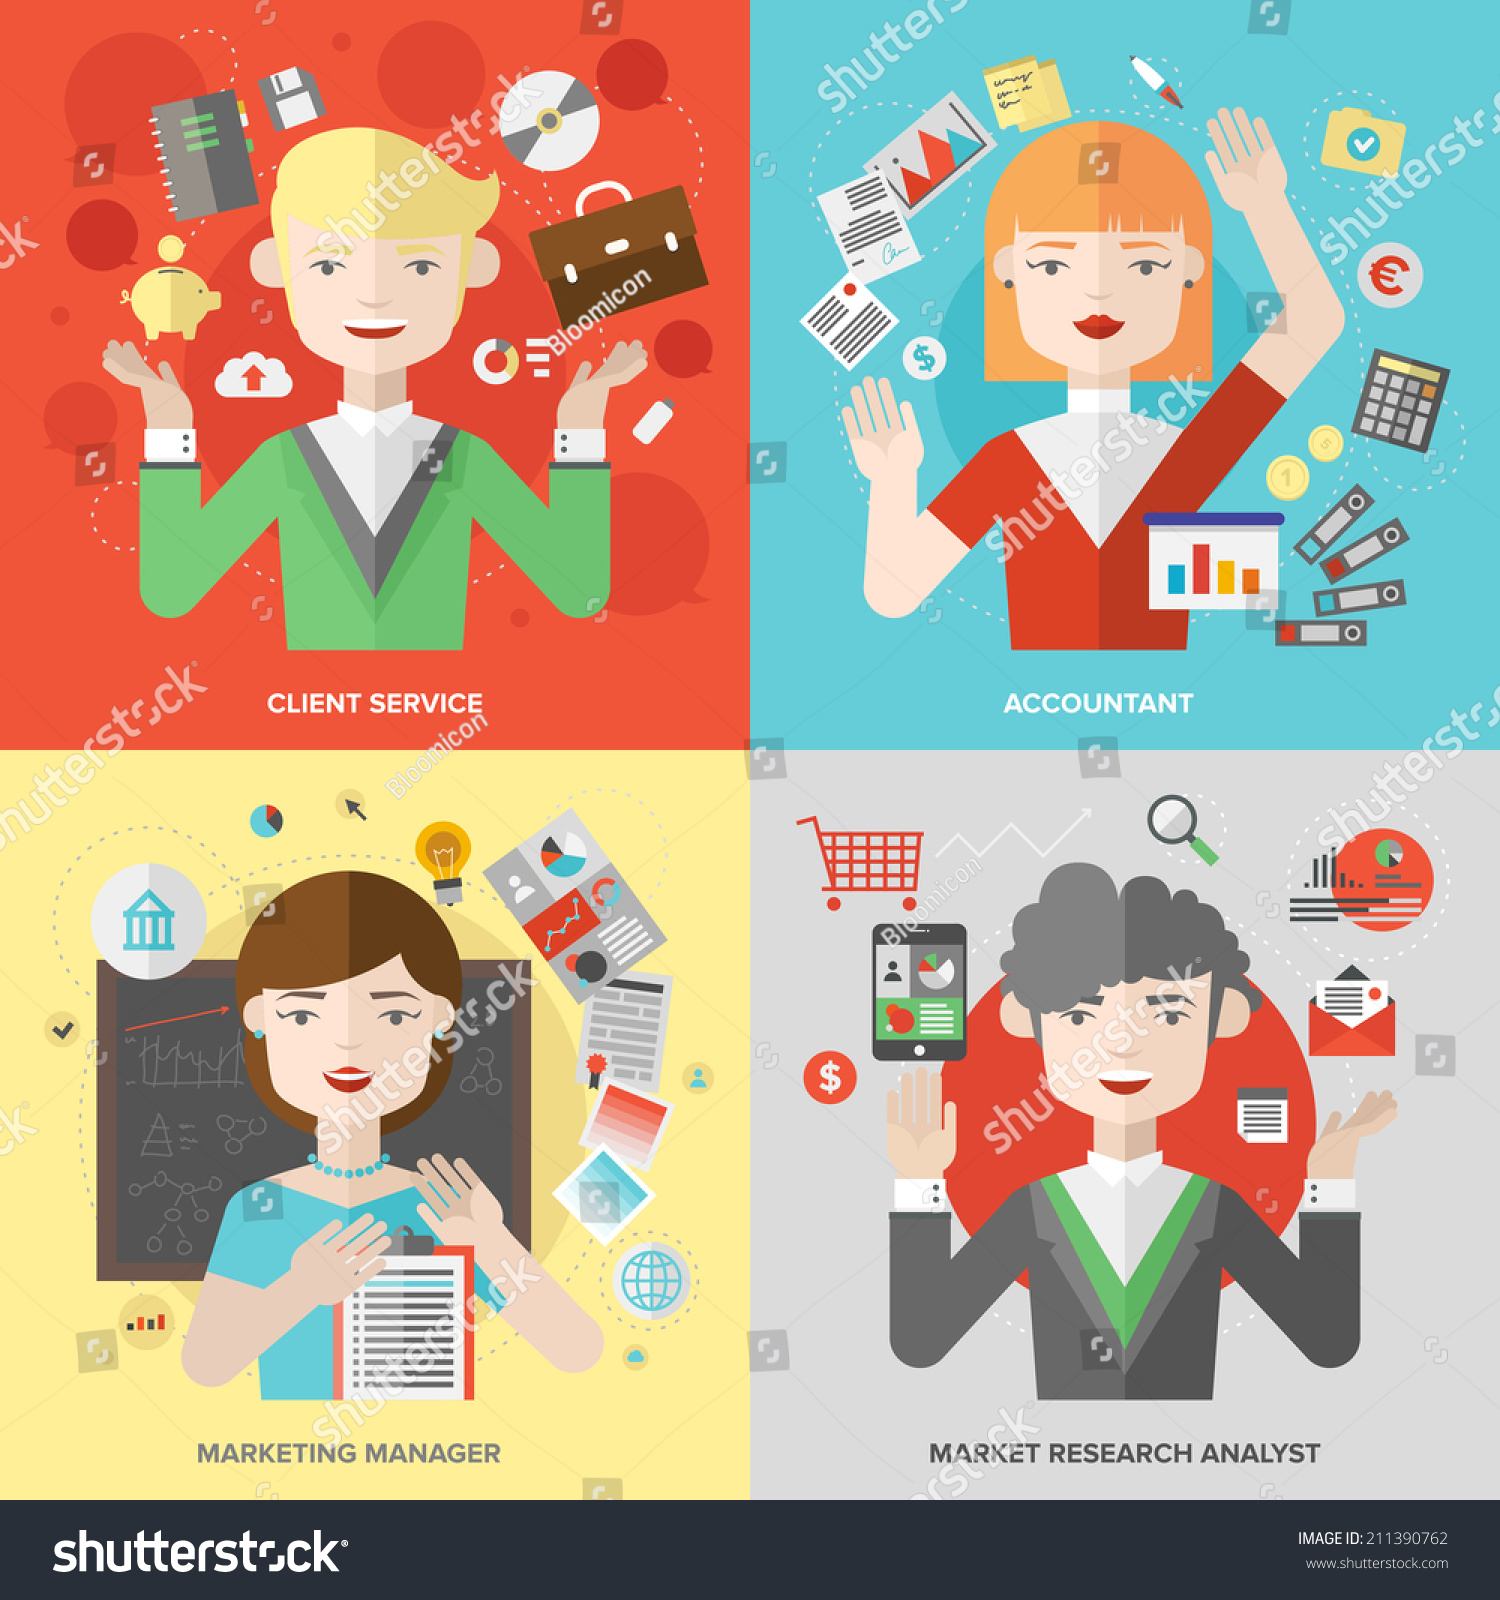 Flat Design Of Business People Jobs Marketing Professions